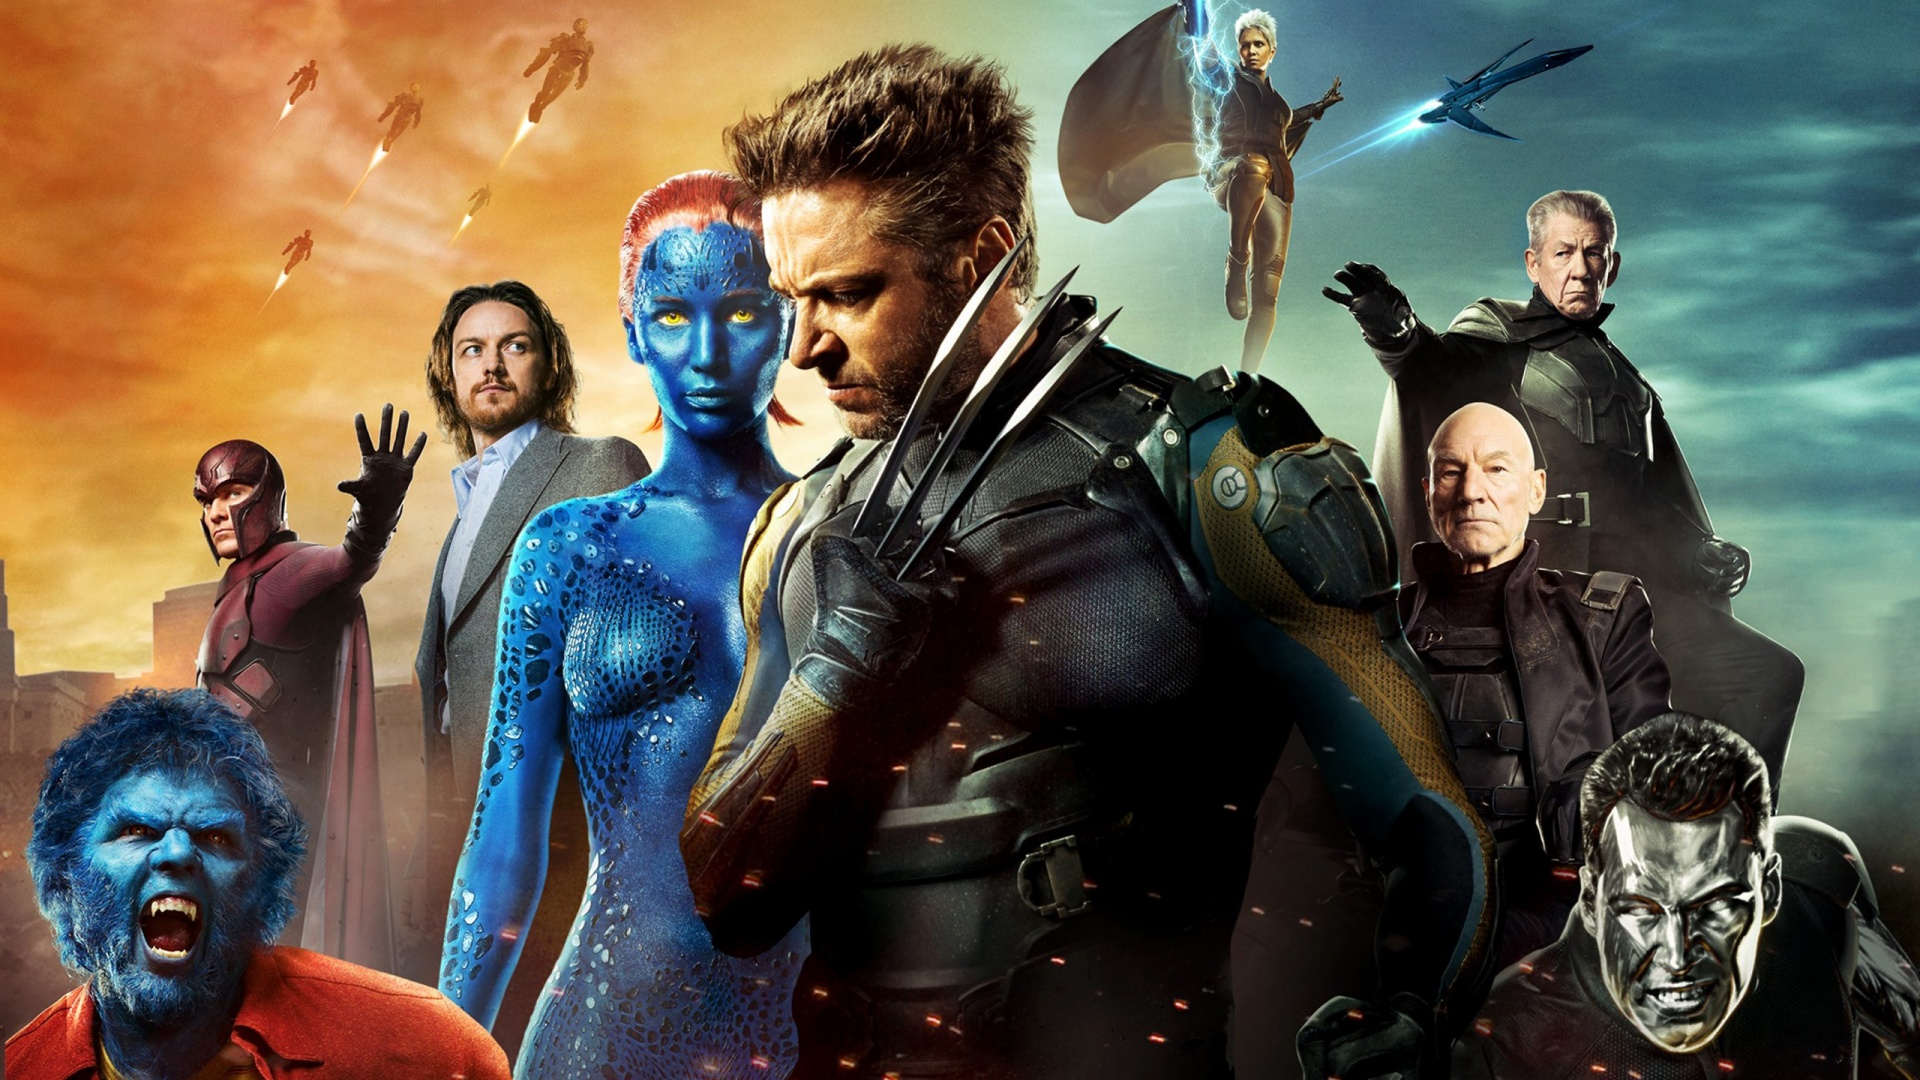 Marvel Live Action Movies Images Xmen Days Of Future Past HD Wallpaper And Background Photos